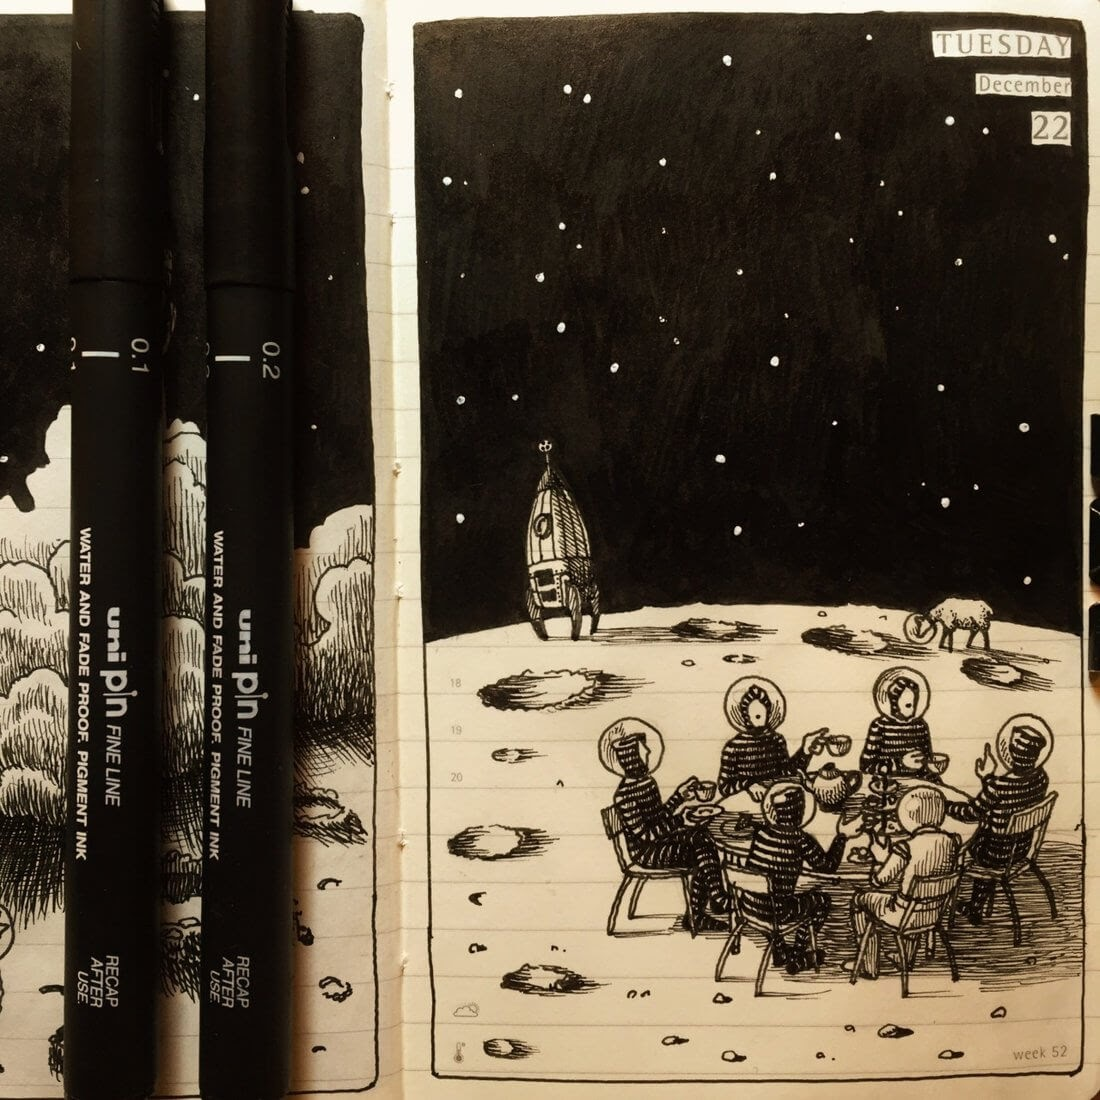 09-Conquering-the-Moon-Nina-Johansson-Moleskine-Diary-of-Surreal-Ink-Drawings-www-designstack-co